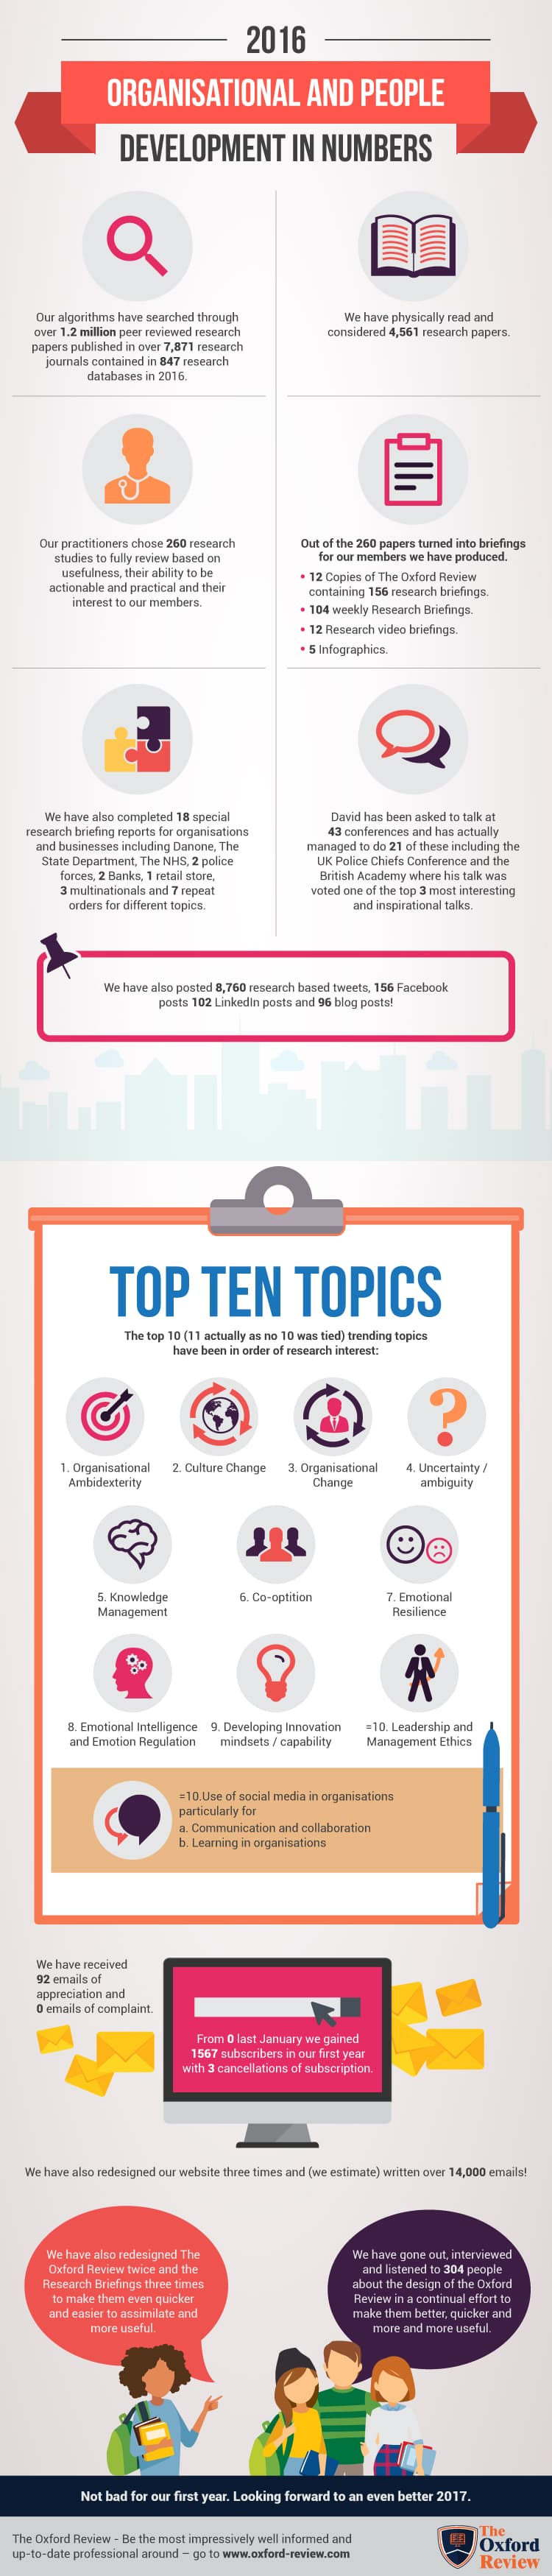 Top 10 Research Topics 2016-17